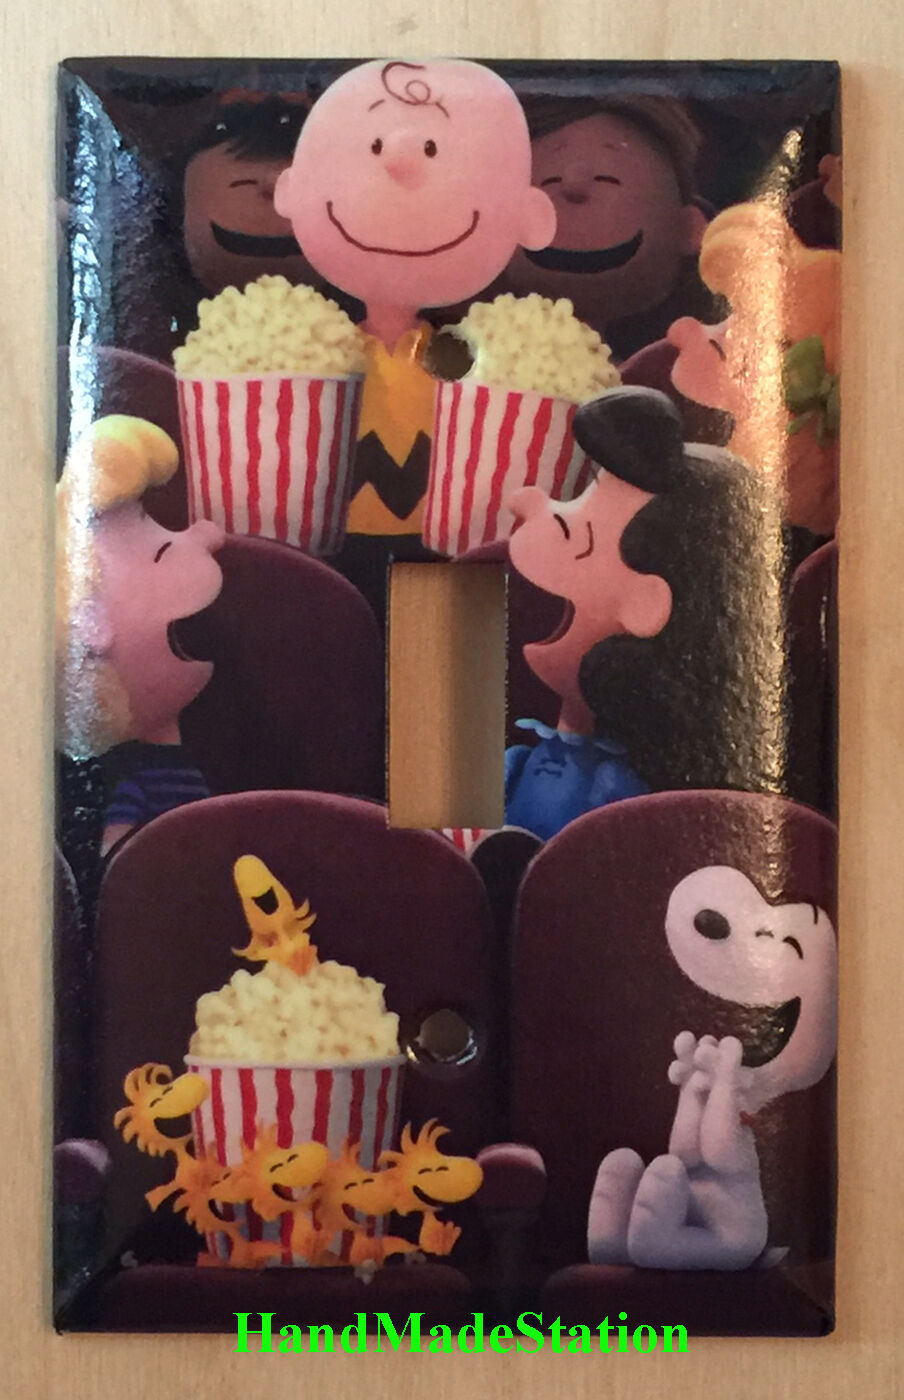 Peanuts Snoopy friends movie theater Light Switch Power Outlet wall Cover Plate